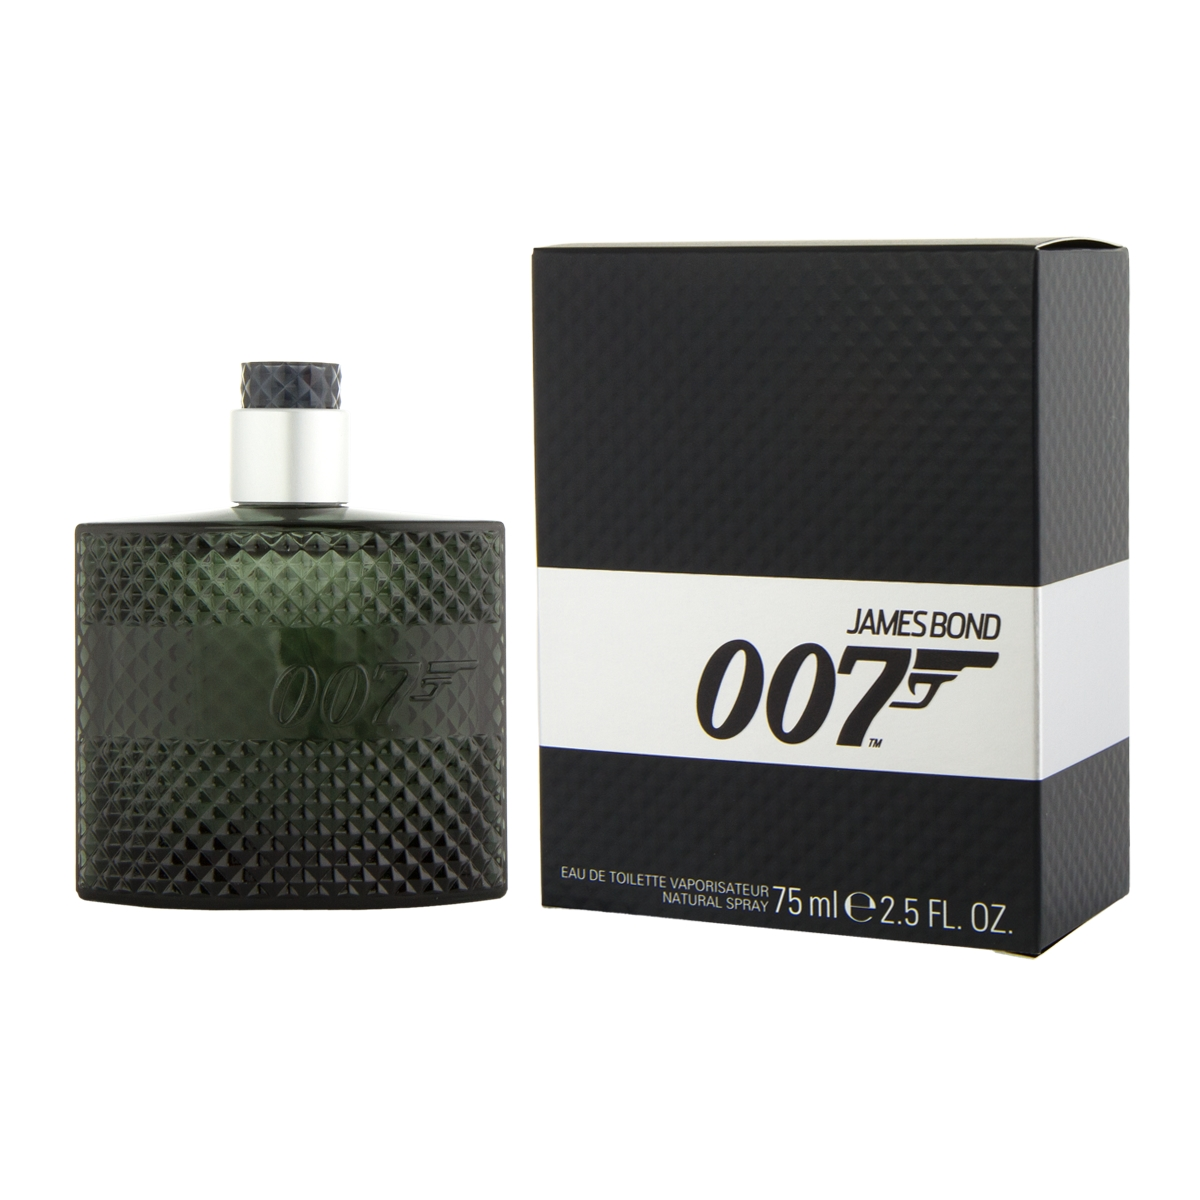 James Bond James Bond 007 Eau De Toilette 75 ml (man) 70050